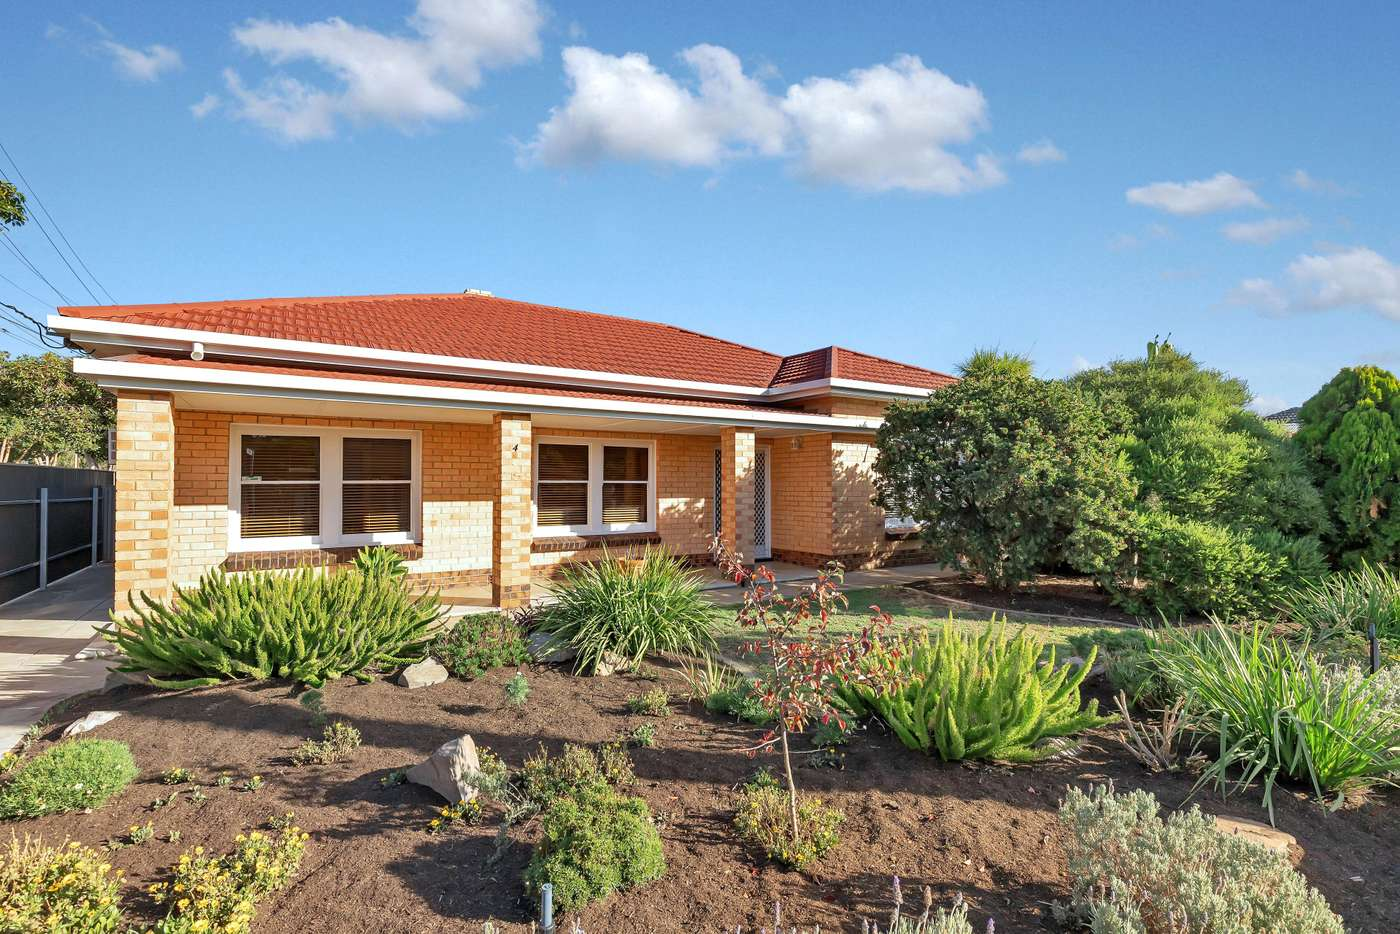 Main view of Homely house listing, 4 Pierson Street, Lockleys SA 5032